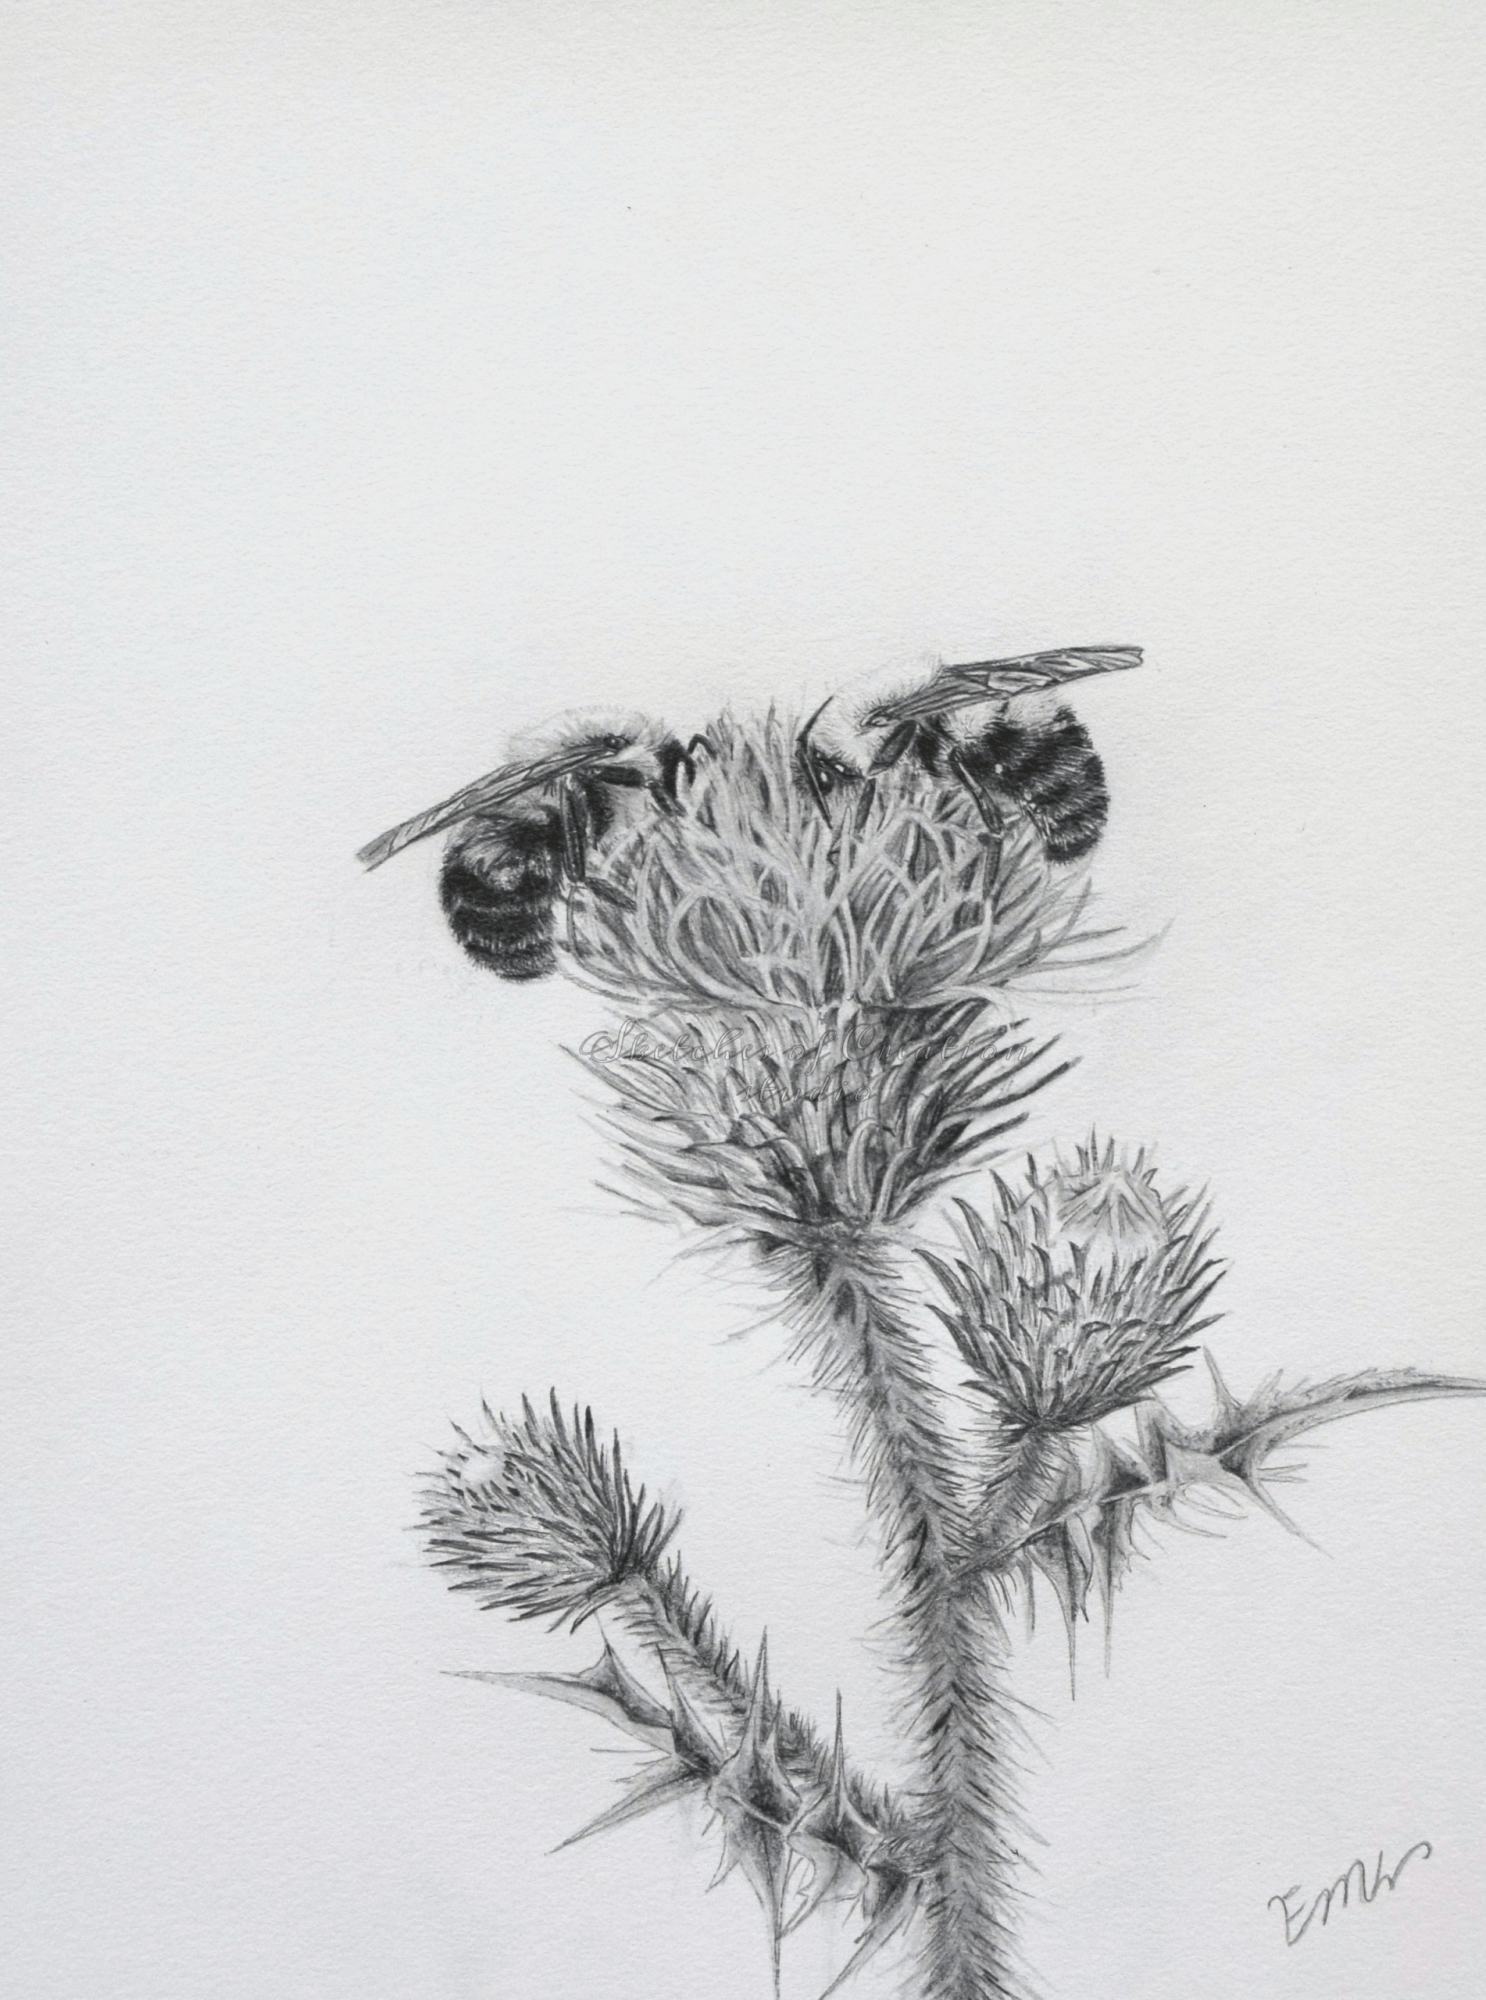 'A Table for Two' a drawing of two bees on a thistle flower. 6x8 inches. Completed August 2019